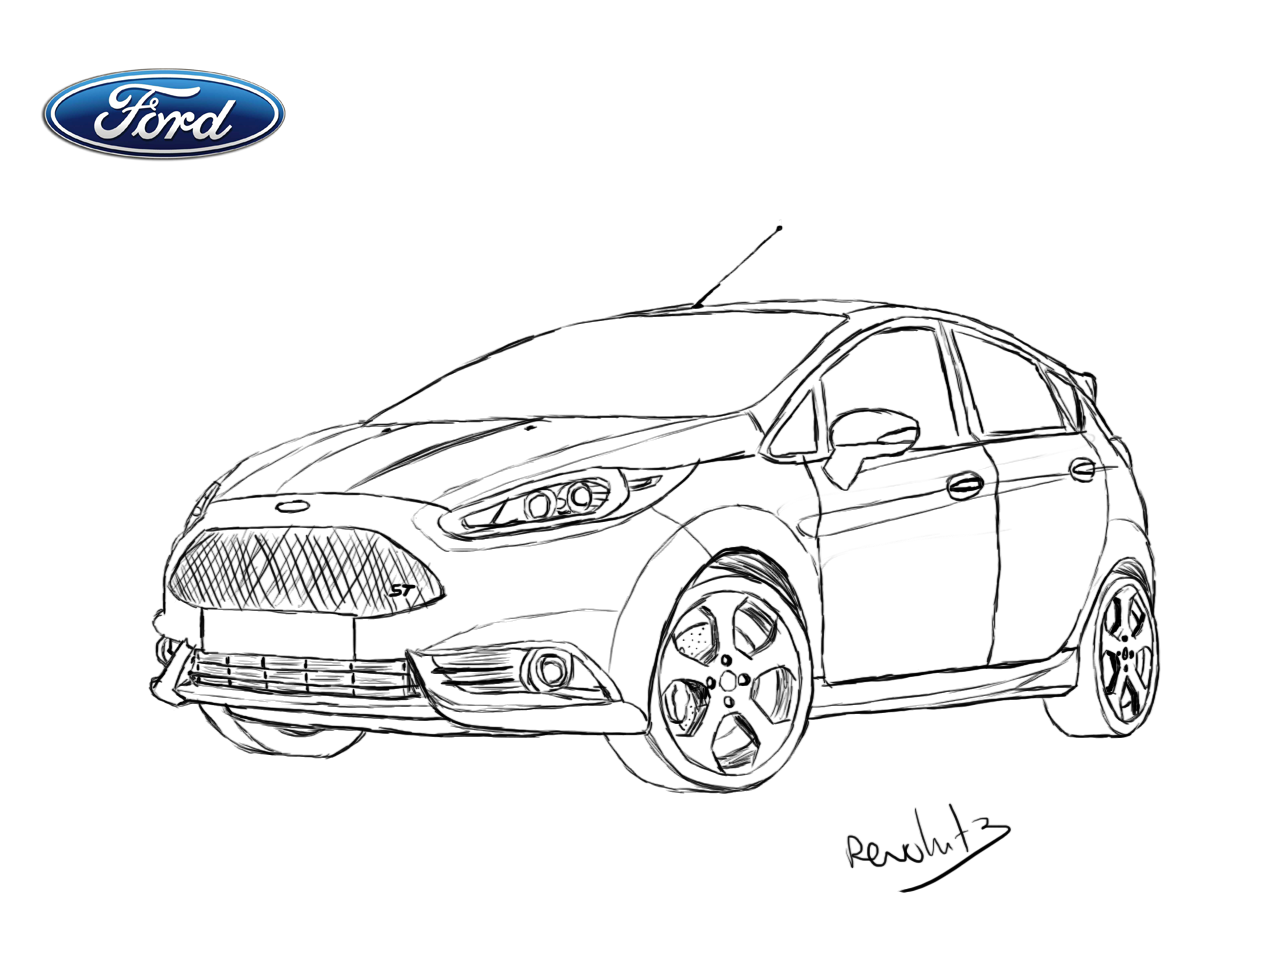 Ford Fiesta ST Drawing 412855639